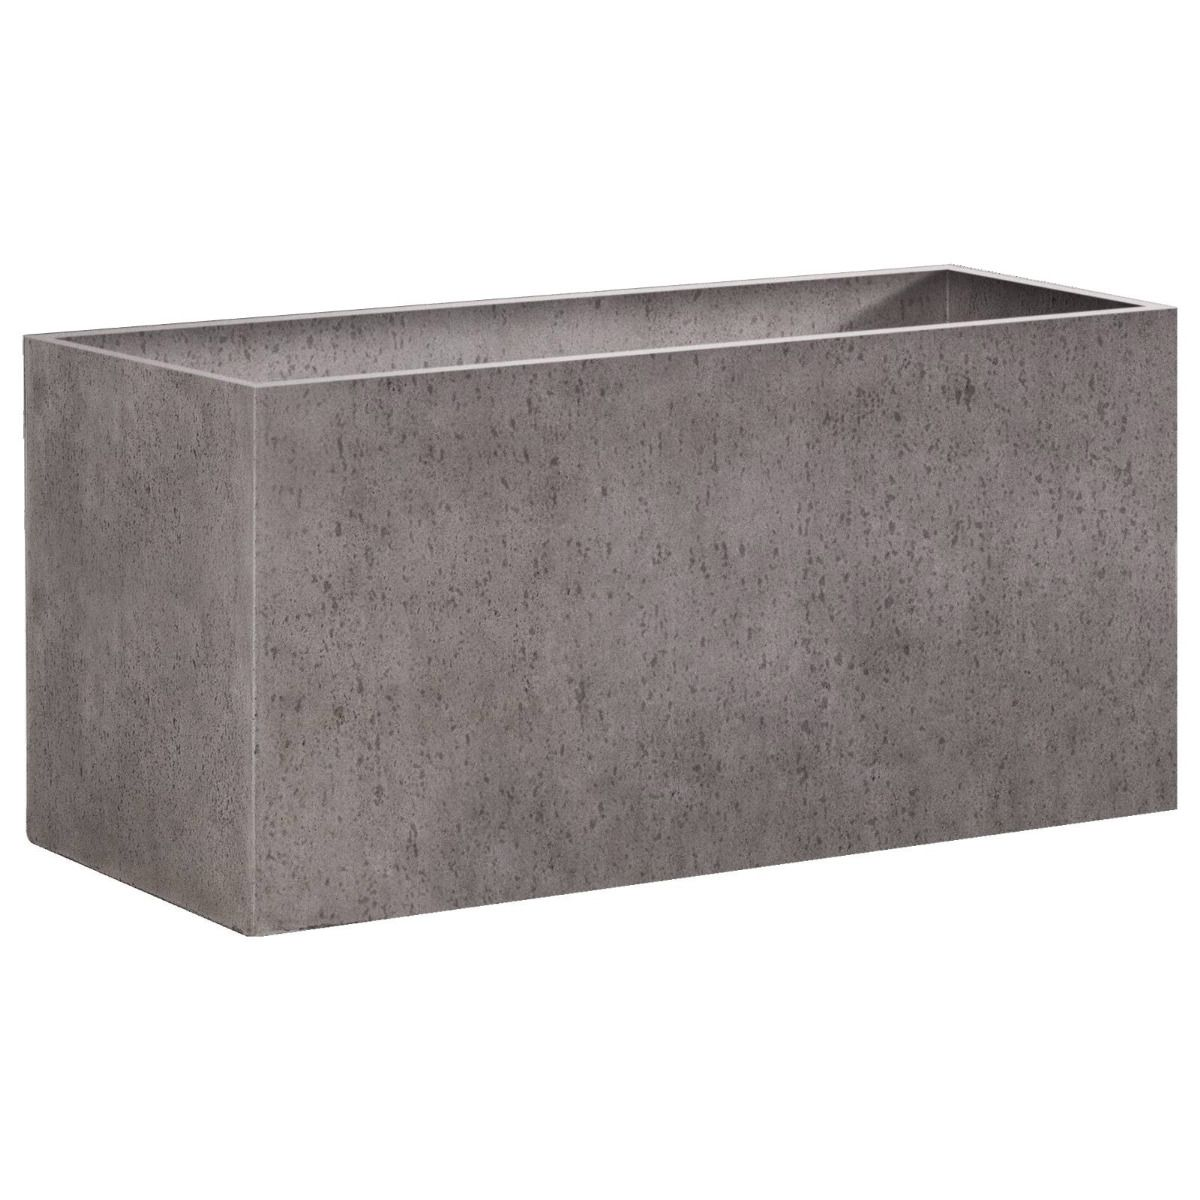 Biscay Rectangular 140x40x72cm Concrete Planter This Light Weight Concrete Is Made From Mixing Cement And Natura Concrete Planters Outdoor Pots Concrete Pots